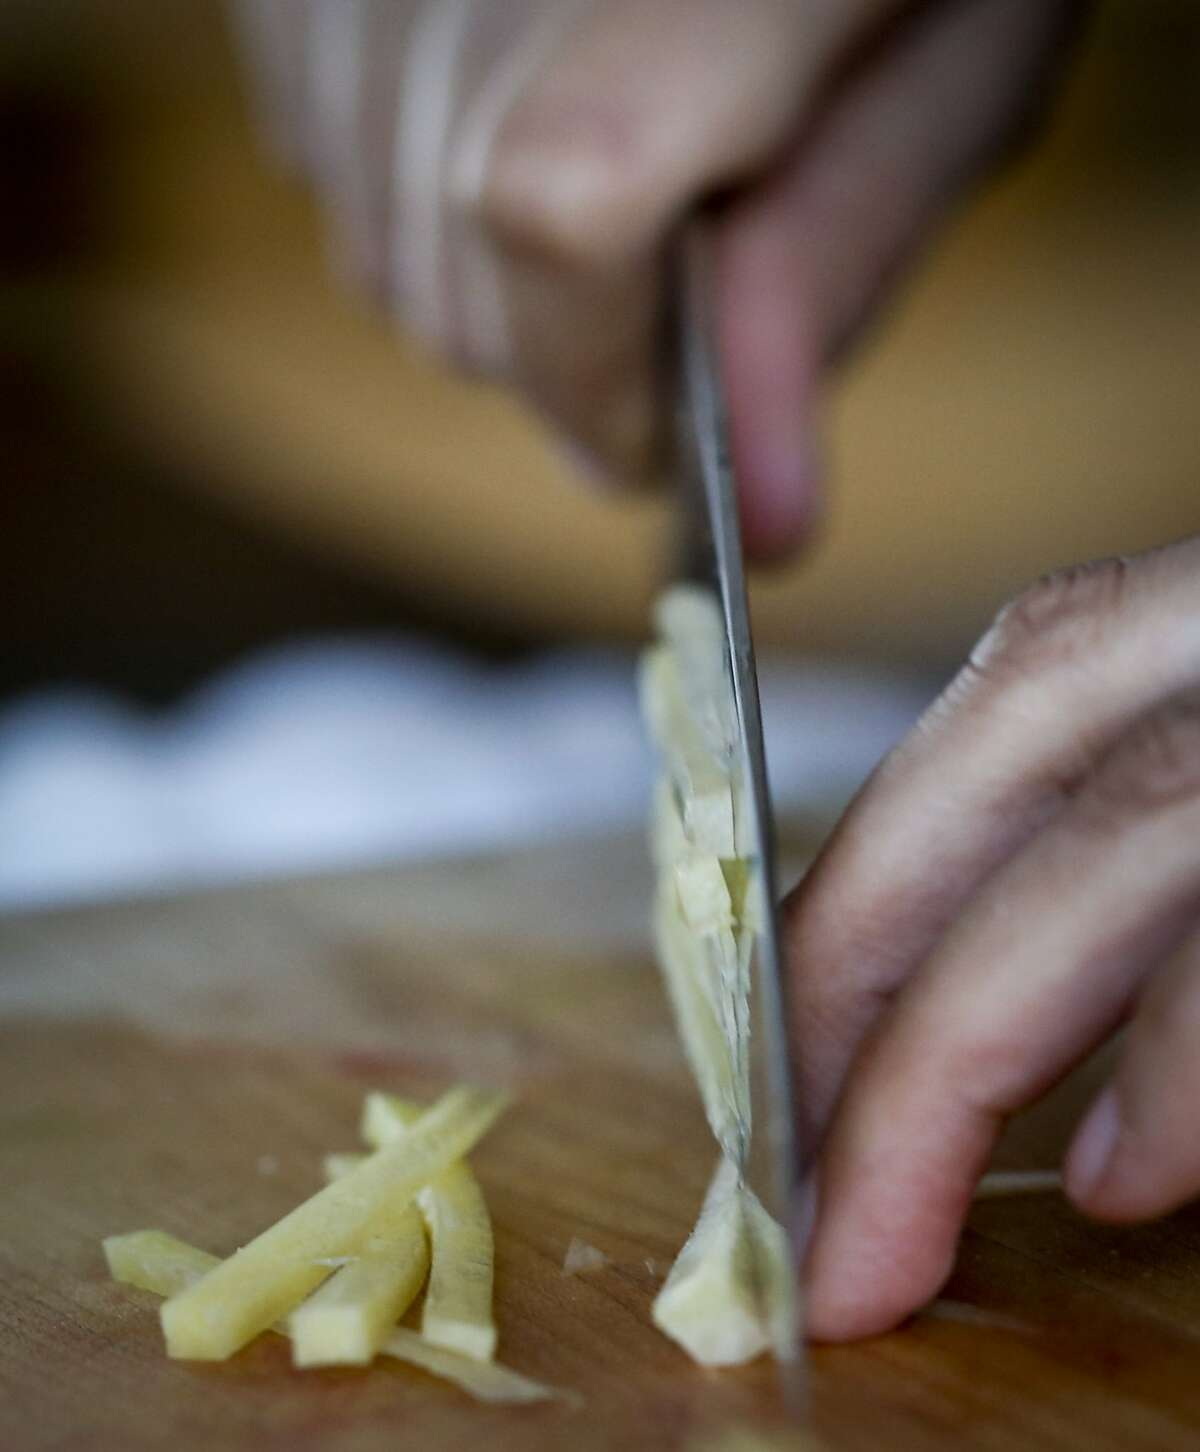 McCollow slices jicama for Aguachile Verde Ceviche, a signature dish at her restaurant.